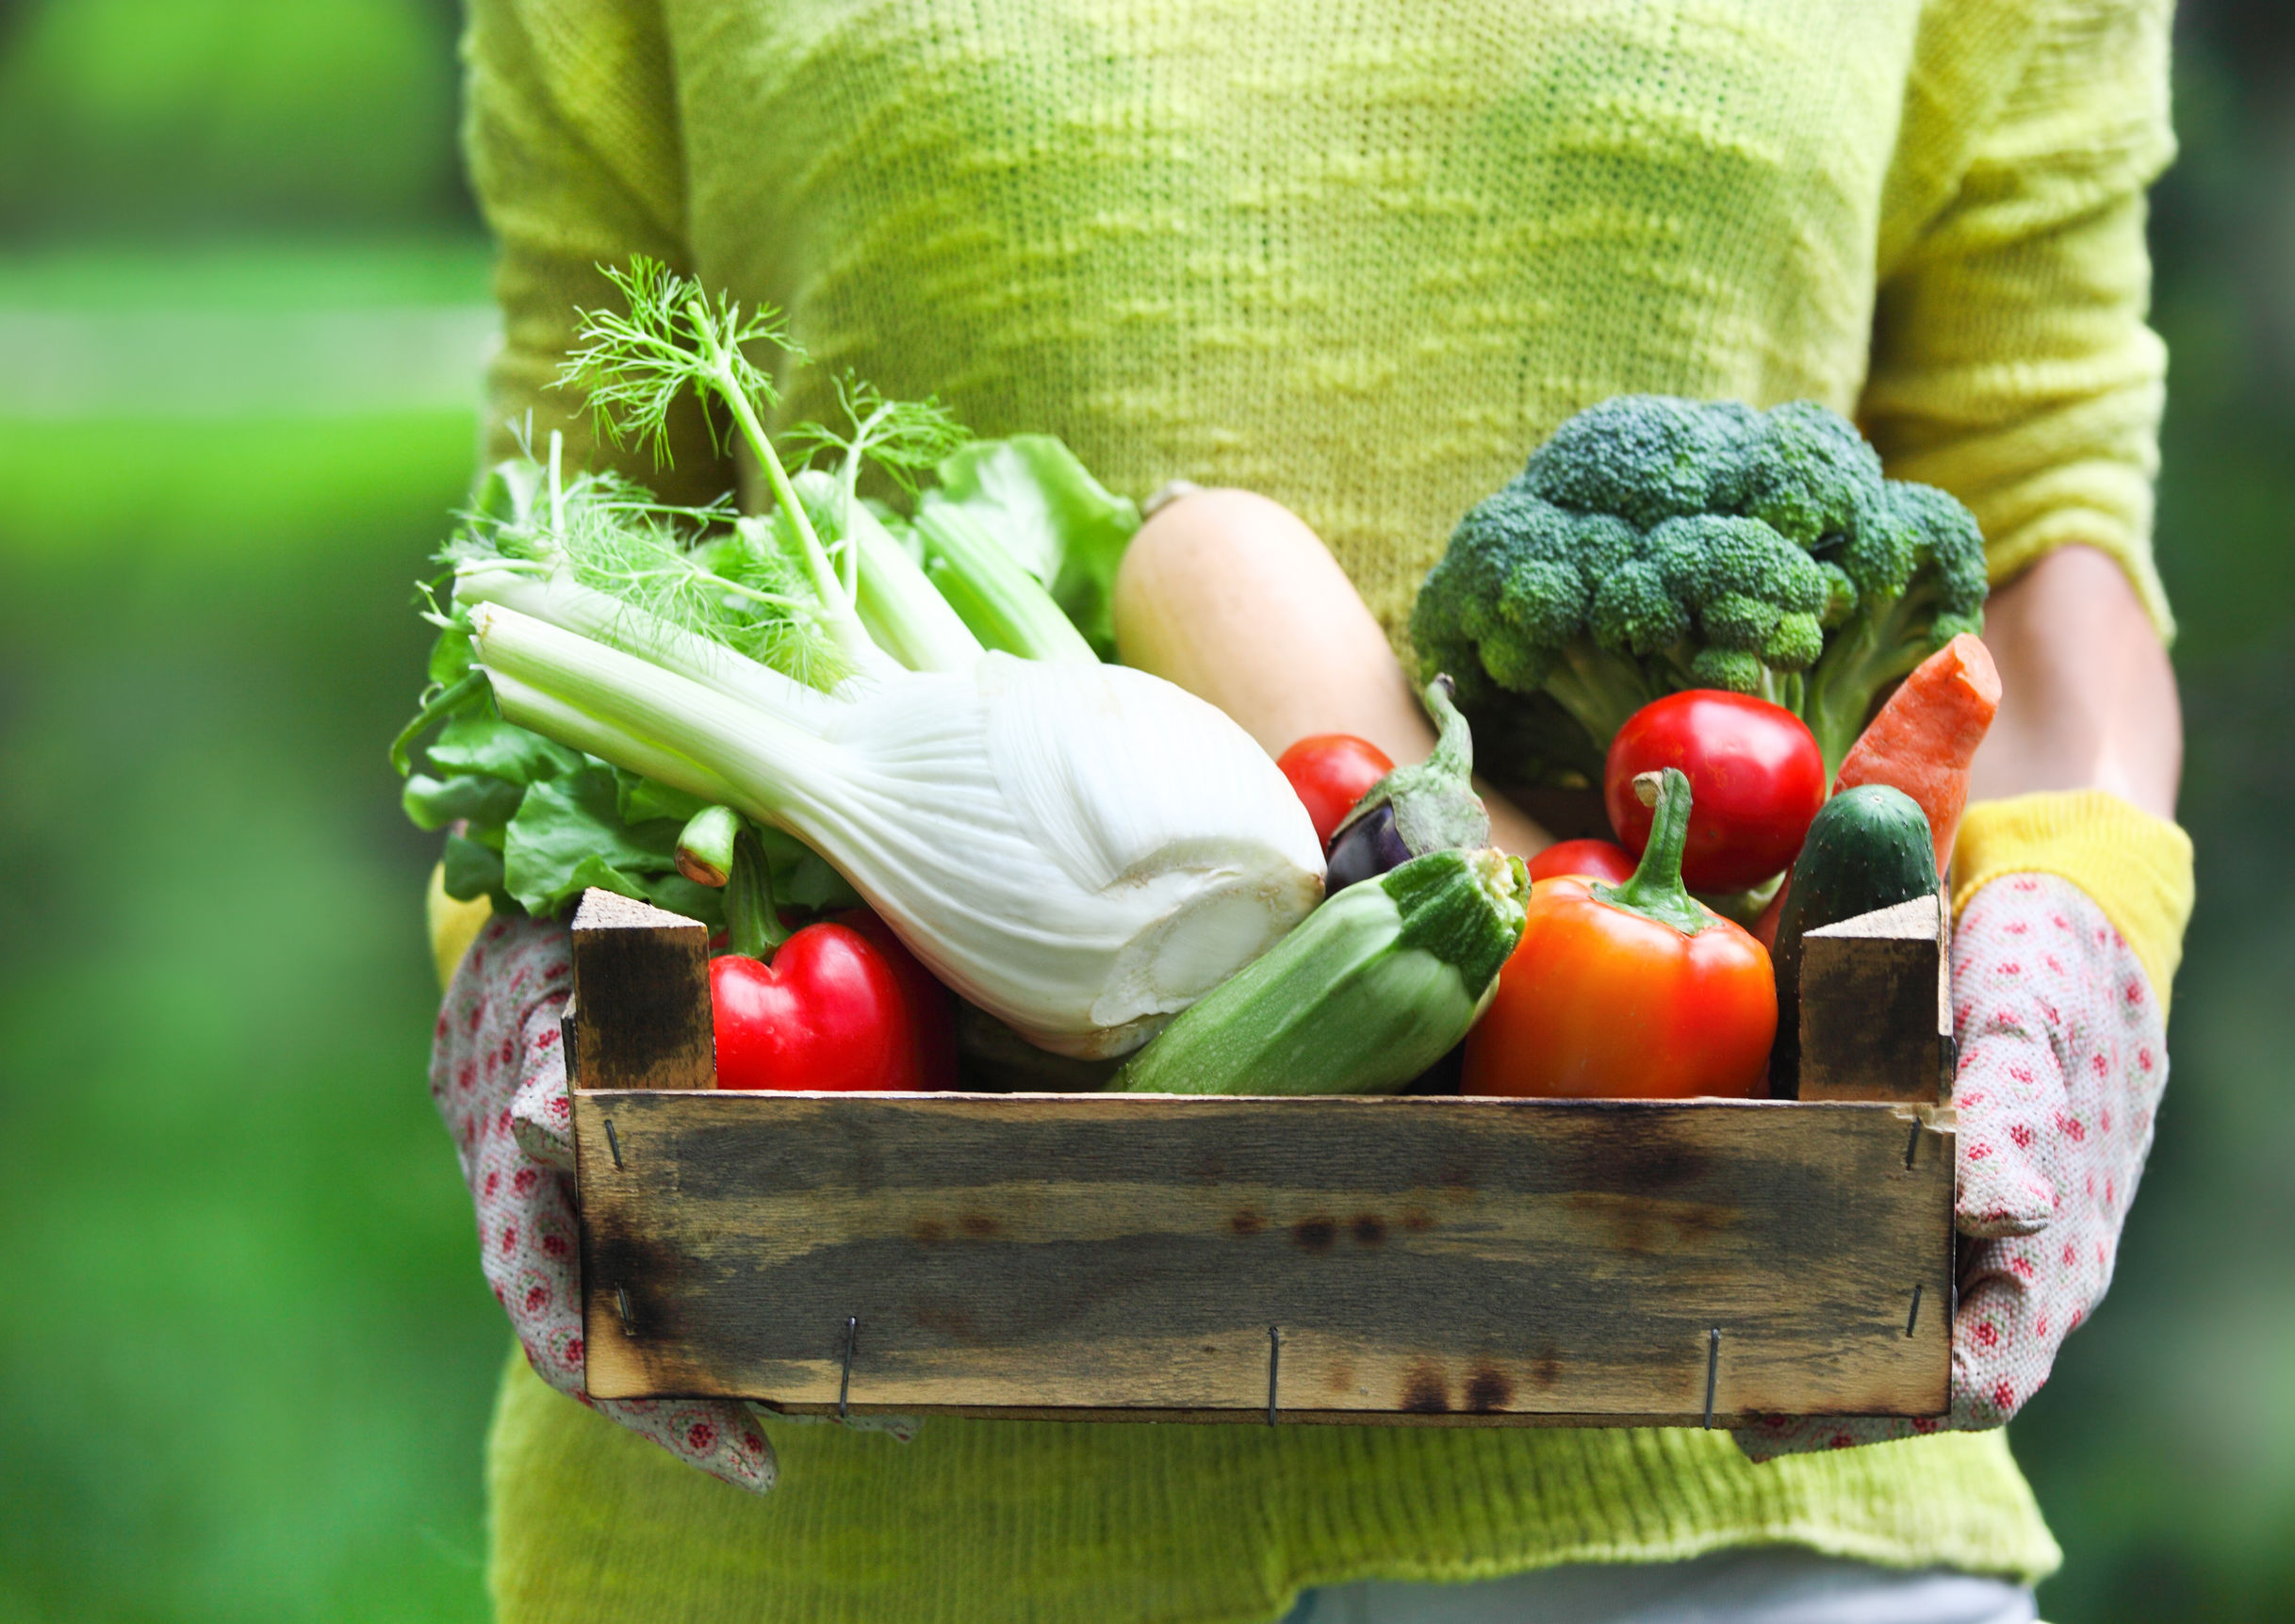 5 Reasons Why Local & In-Season Produce Matters